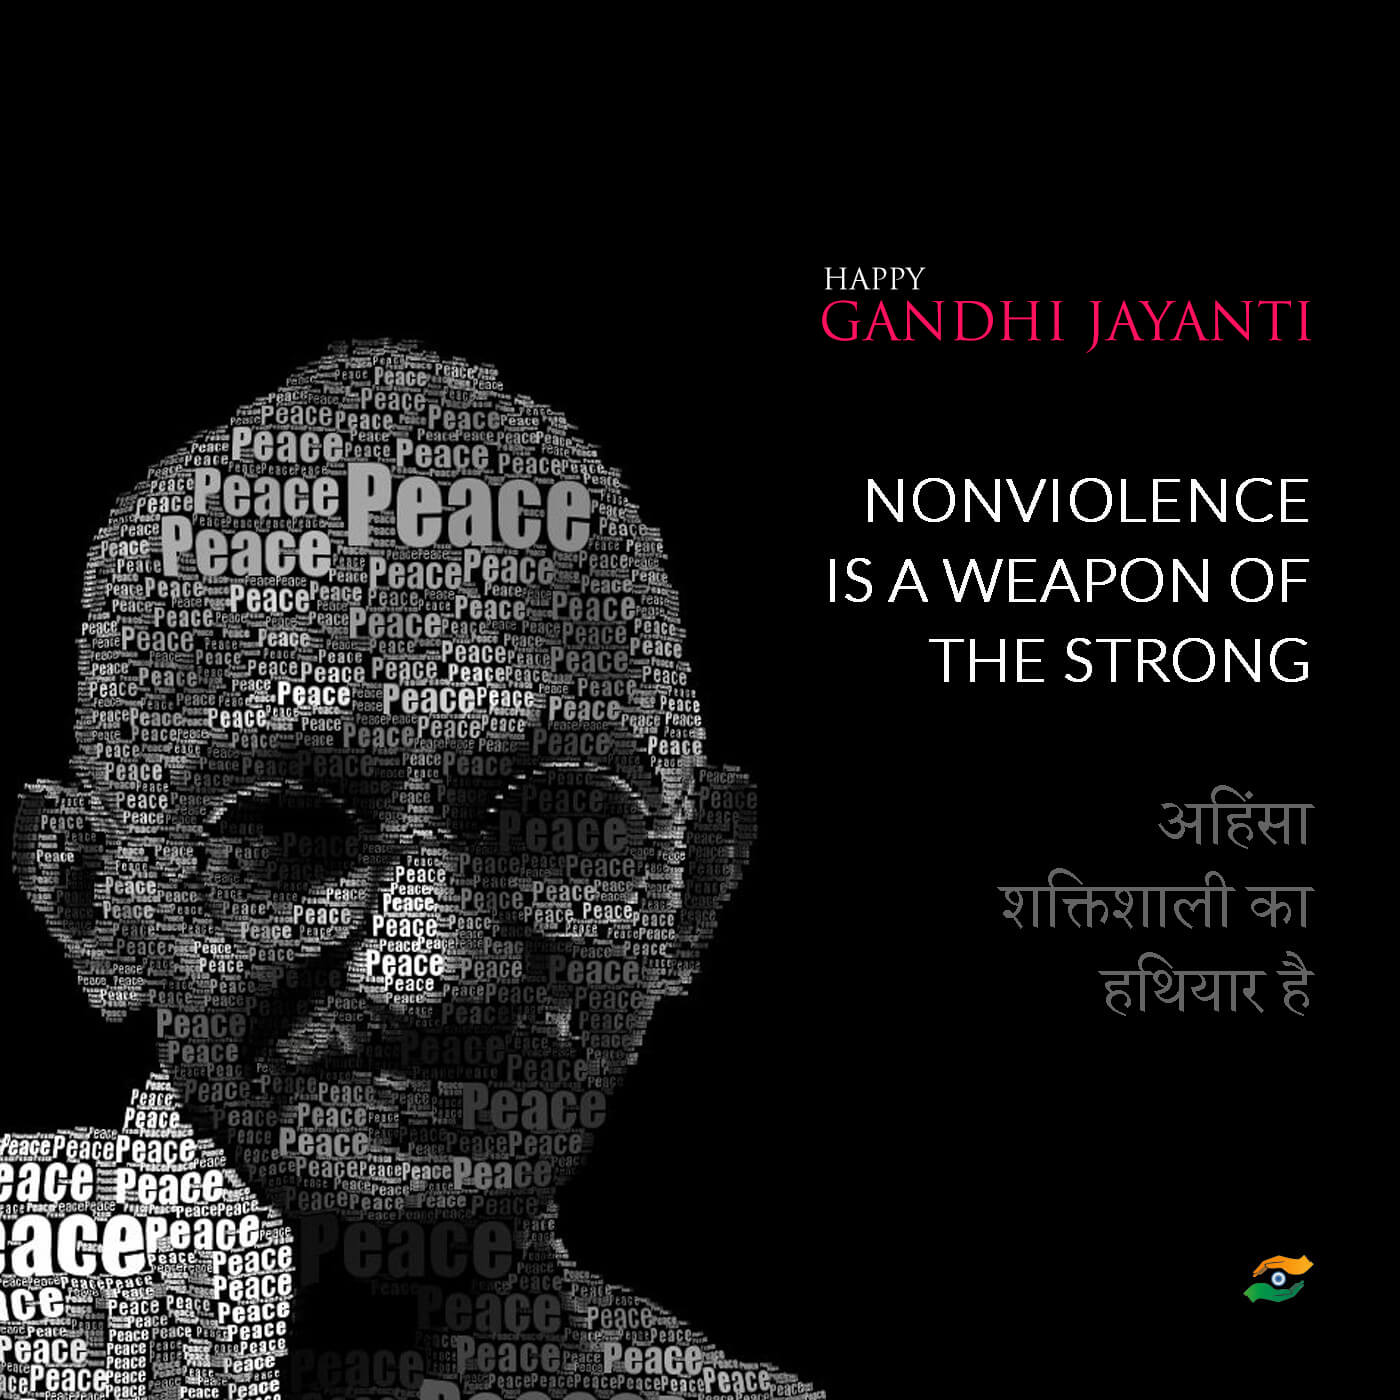 gandhi jayanti non violence october 2 hd wallpaper